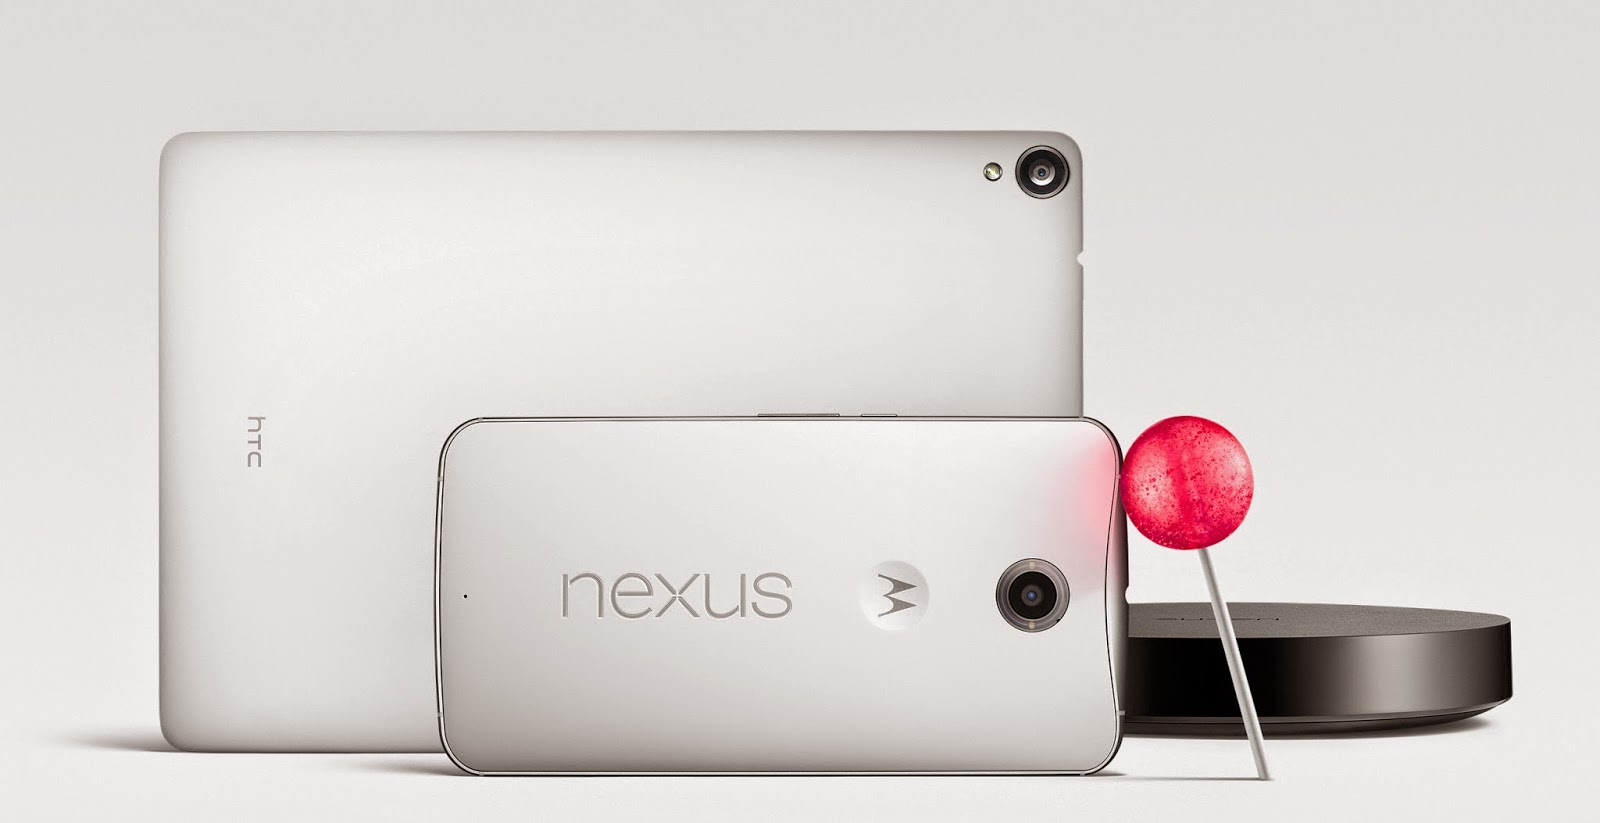 New Nexus Devices